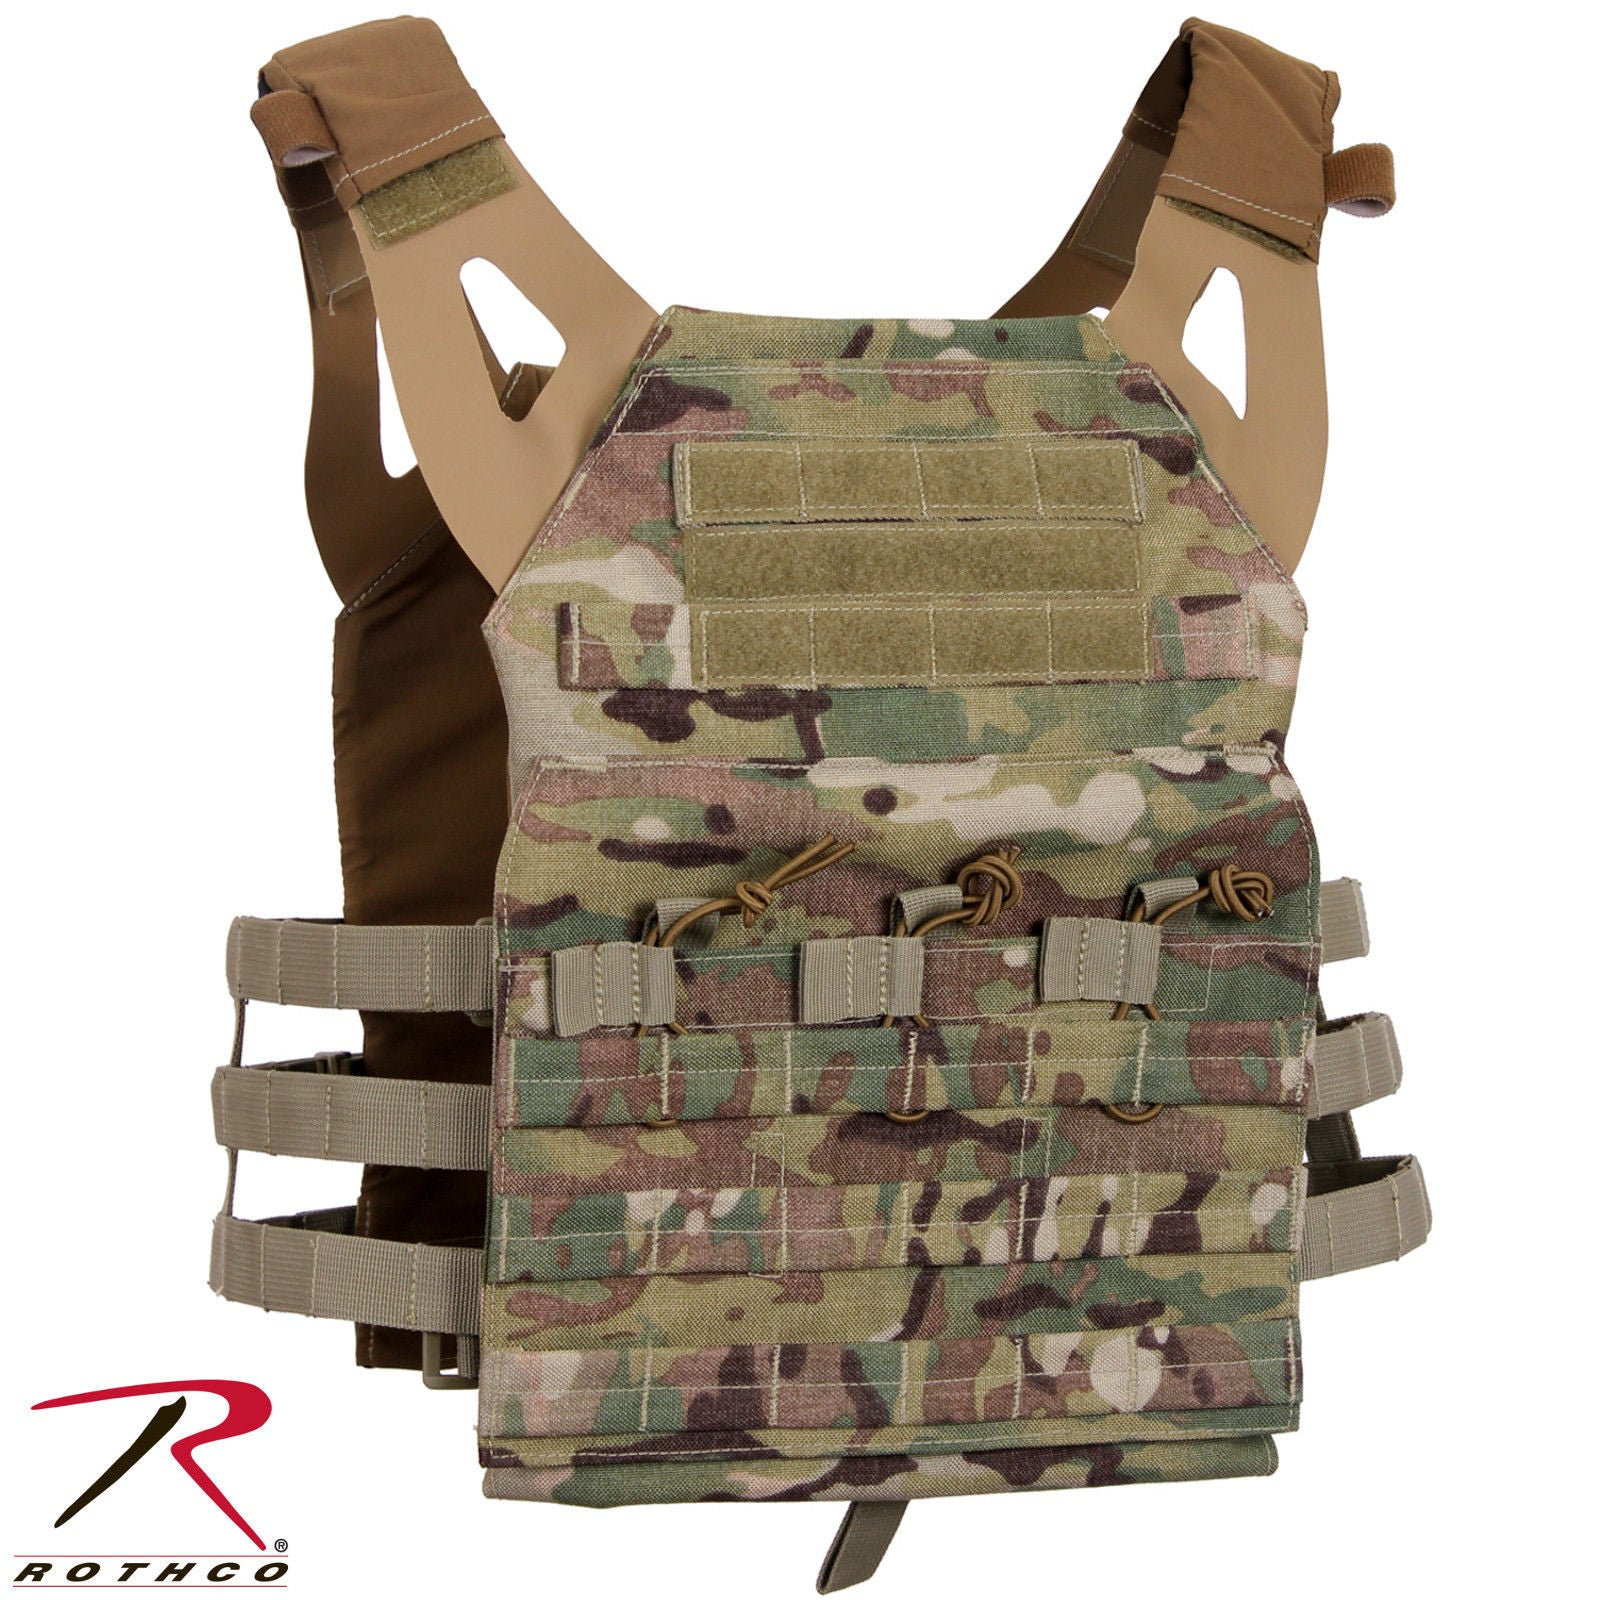 67d9304a00 Lightweight Plate Carrier Tactical Vest - Rothco MultiCam or OD Mag Pouch  Vests